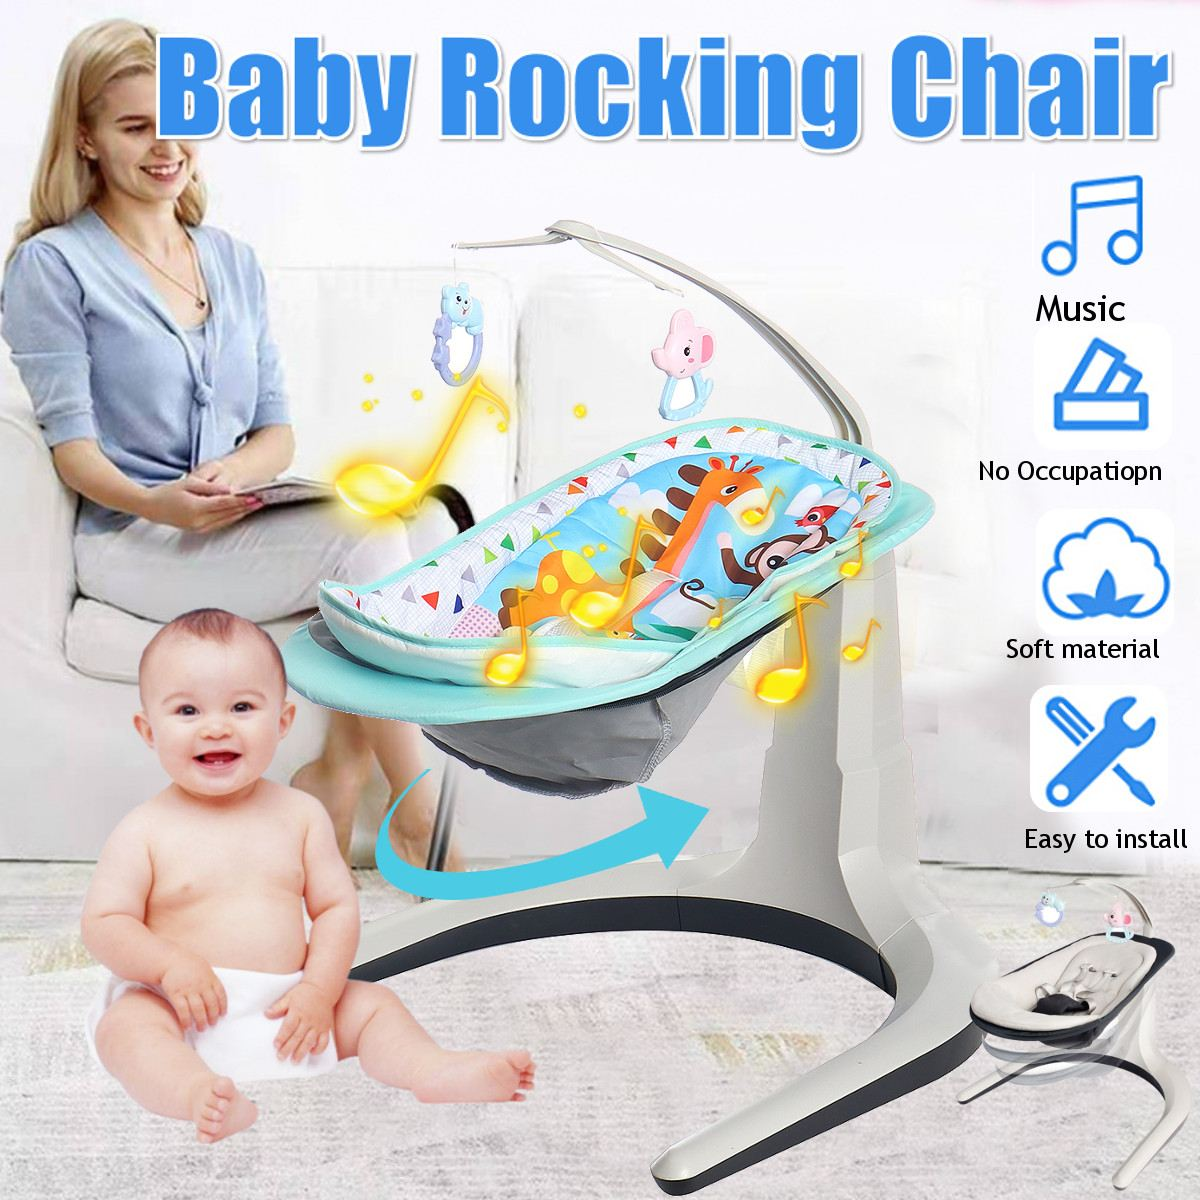 2 in 1 Newborn Gift Multi function Music Electric Swing Chair Infant Baby Rocking Chair Comfort 2 in 1 Newborn Gift Multi-function Music Electric Swing Chair Infant Baby Rocking Chair Comfort BB Cradle Baby Rocker Swing 0-3